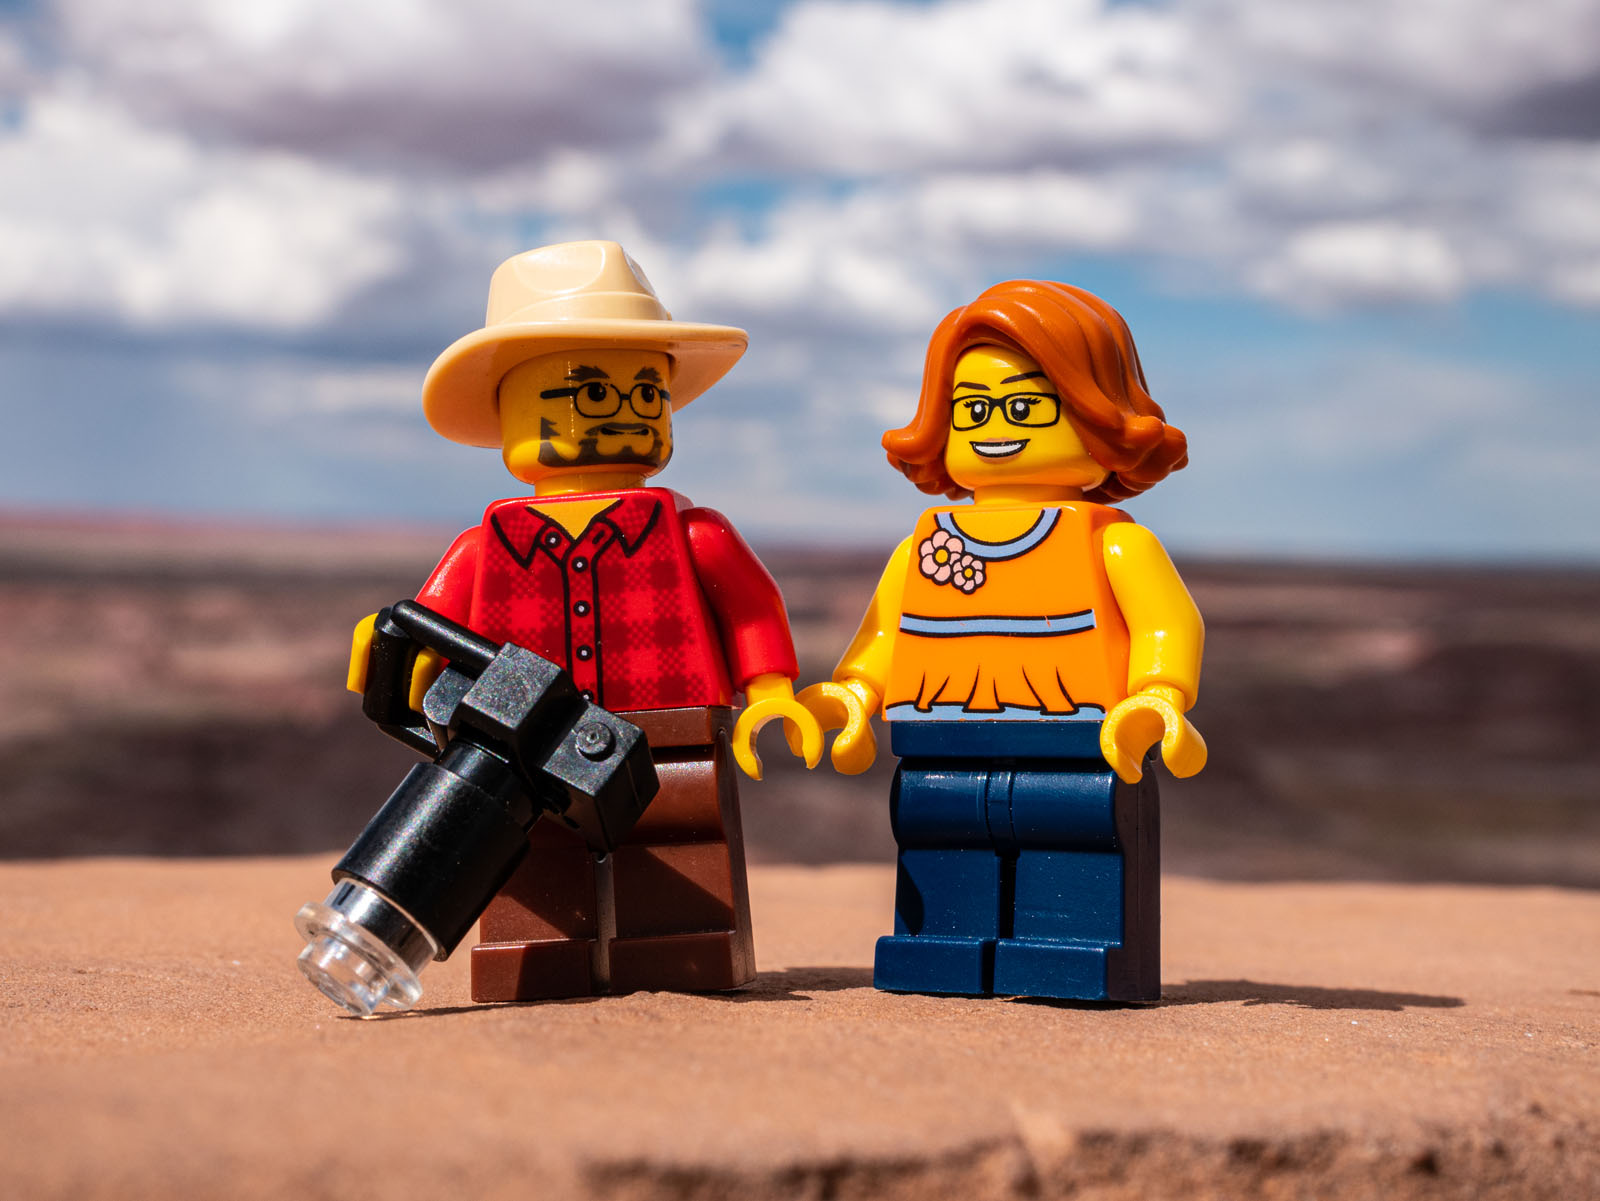 Naturally we did take a few  Lego Expedition  shots, but only on the last couple days of our trip.